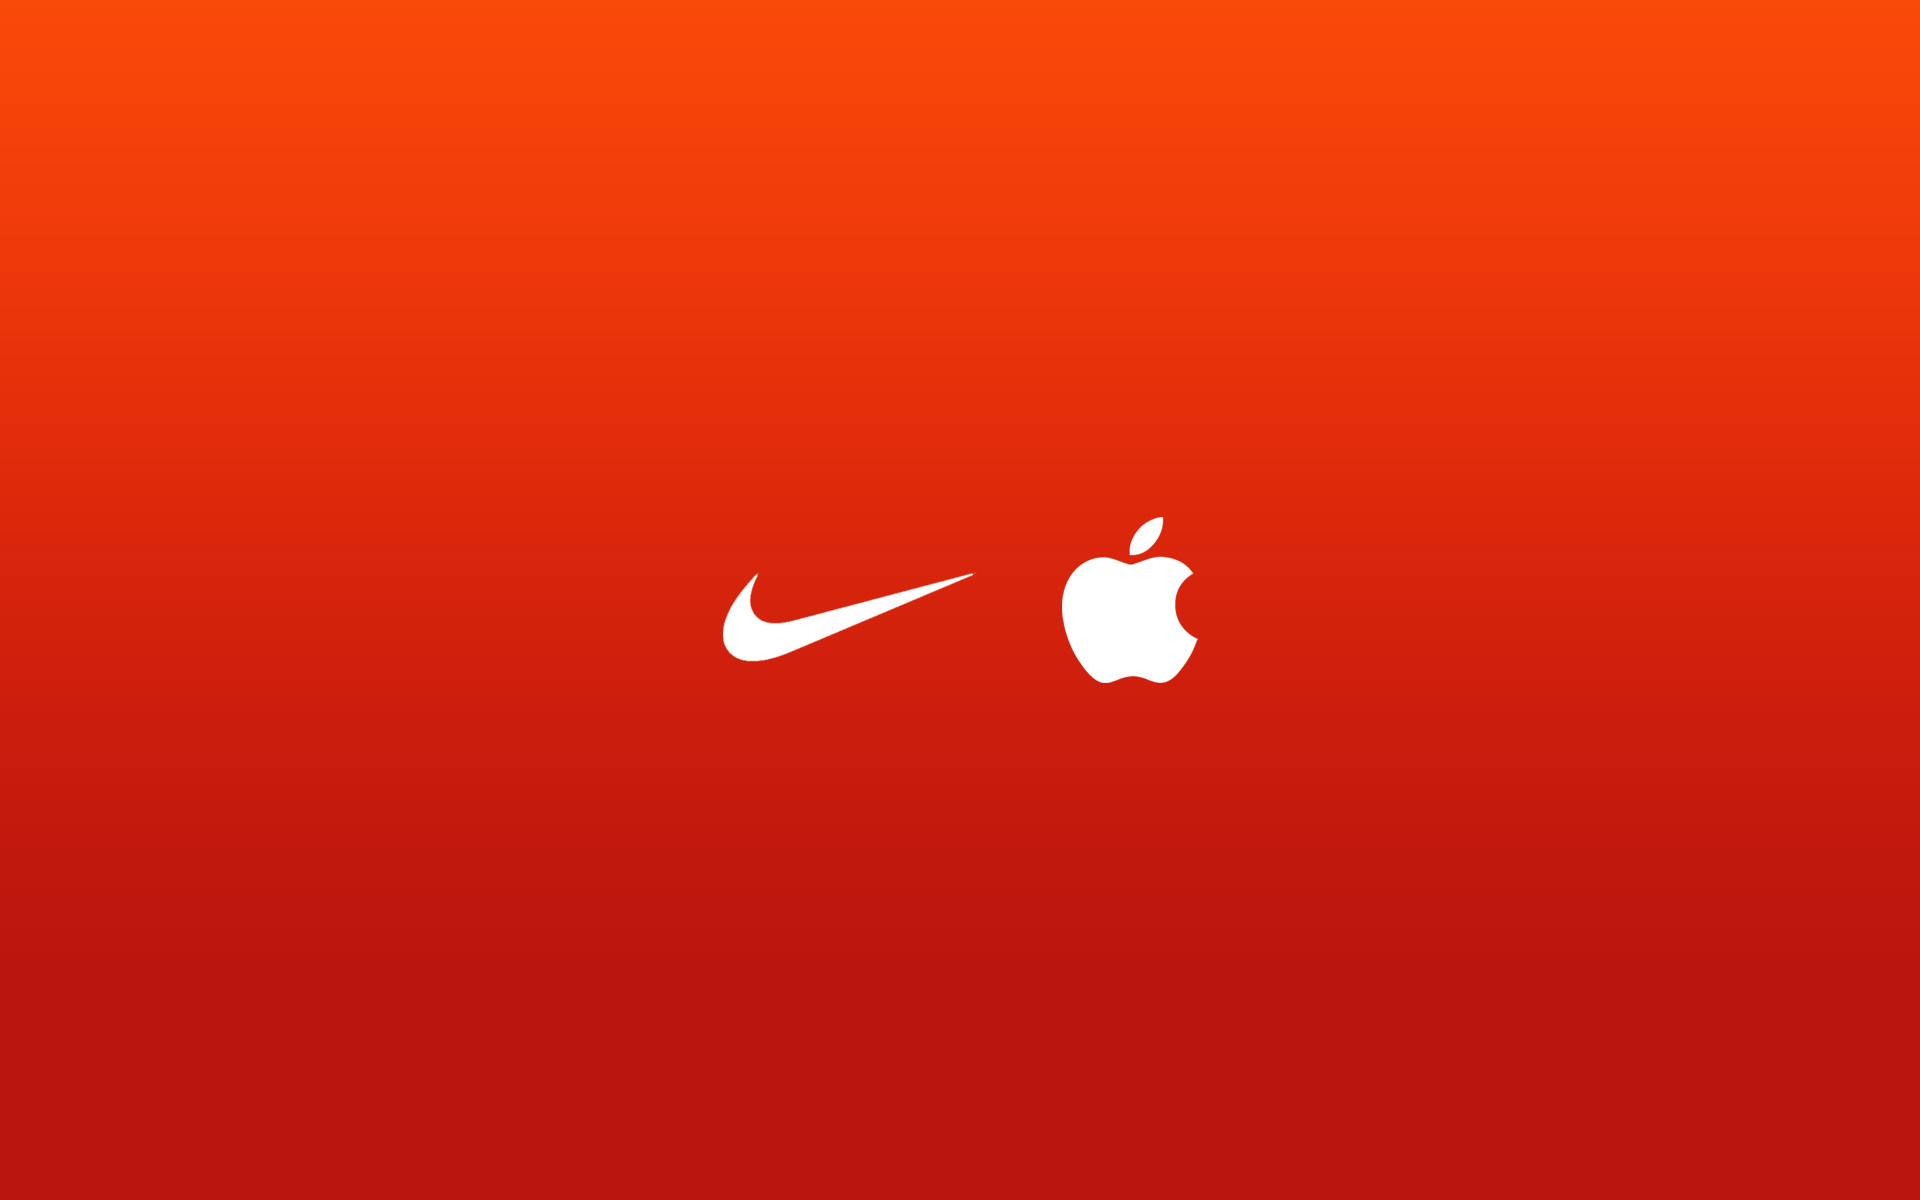 1920x1080 Wallpapers For Cool Iphone 5 Nike Backgrounds